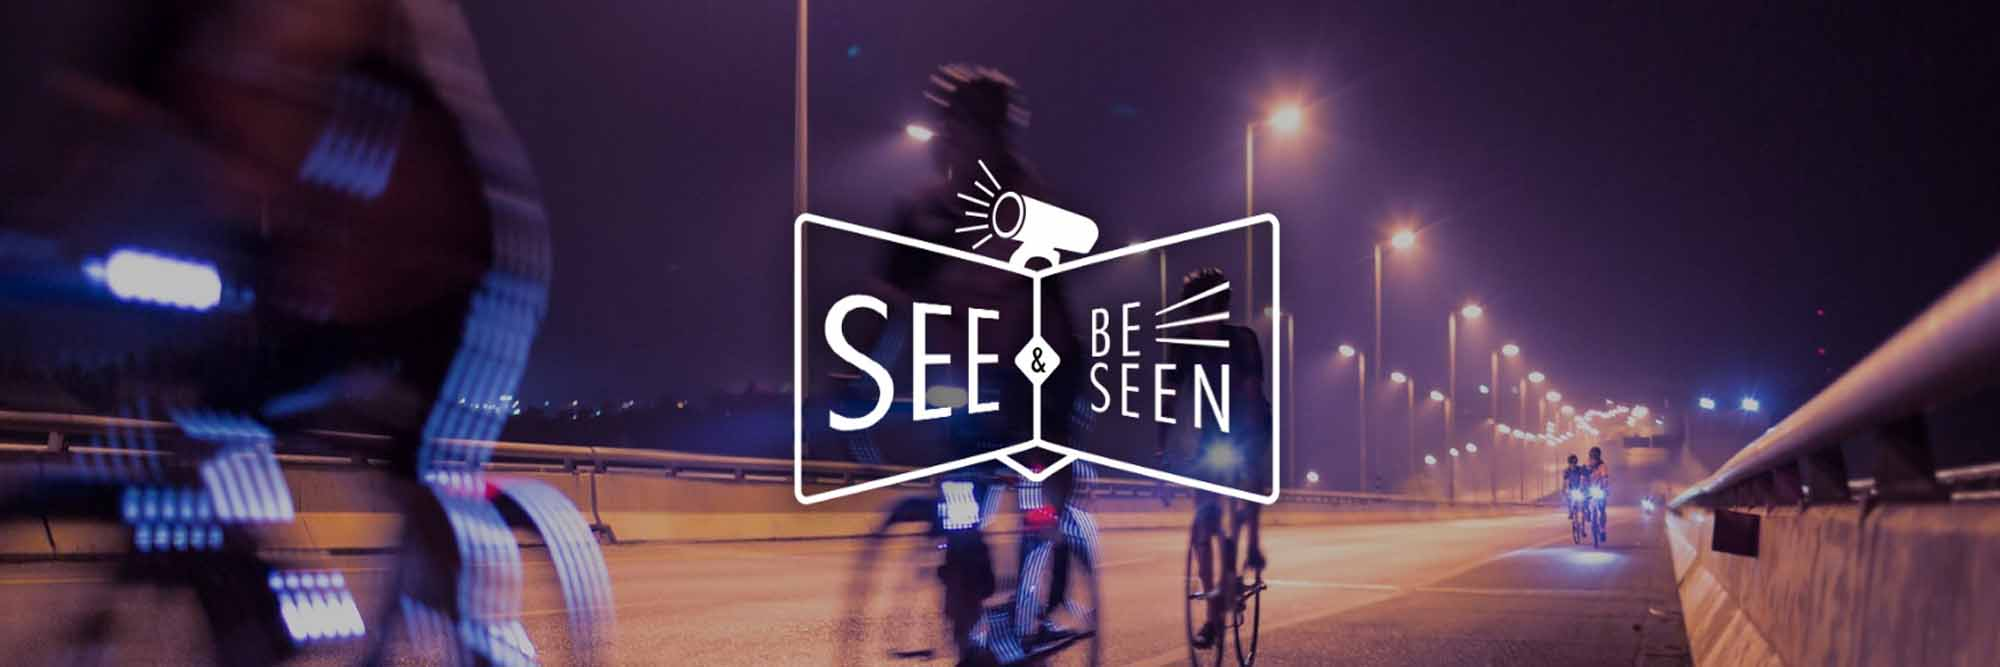 Be Seen with Lights